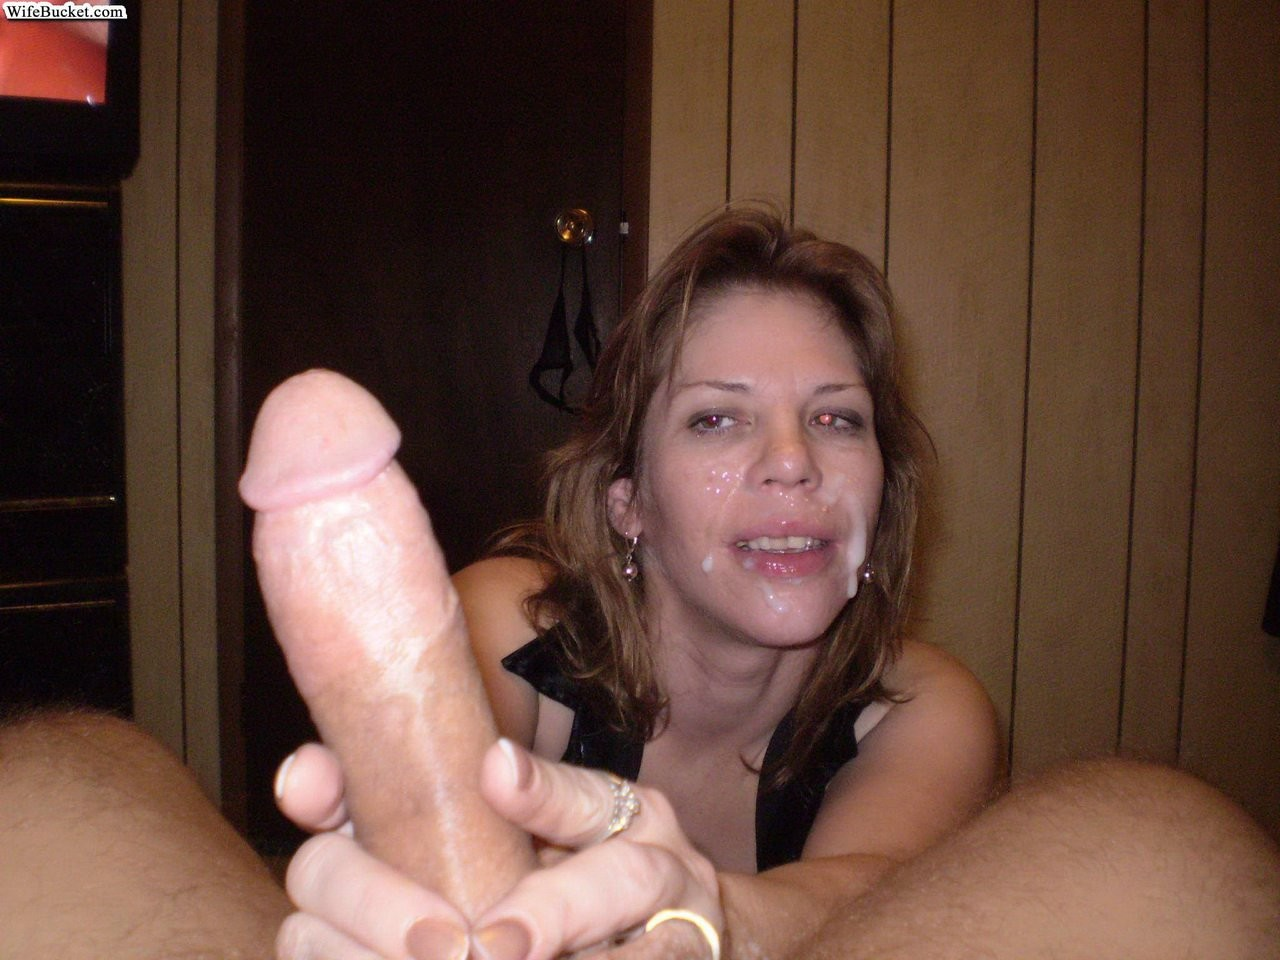 Slutty moms and wives giving blowjobs - Pichunter